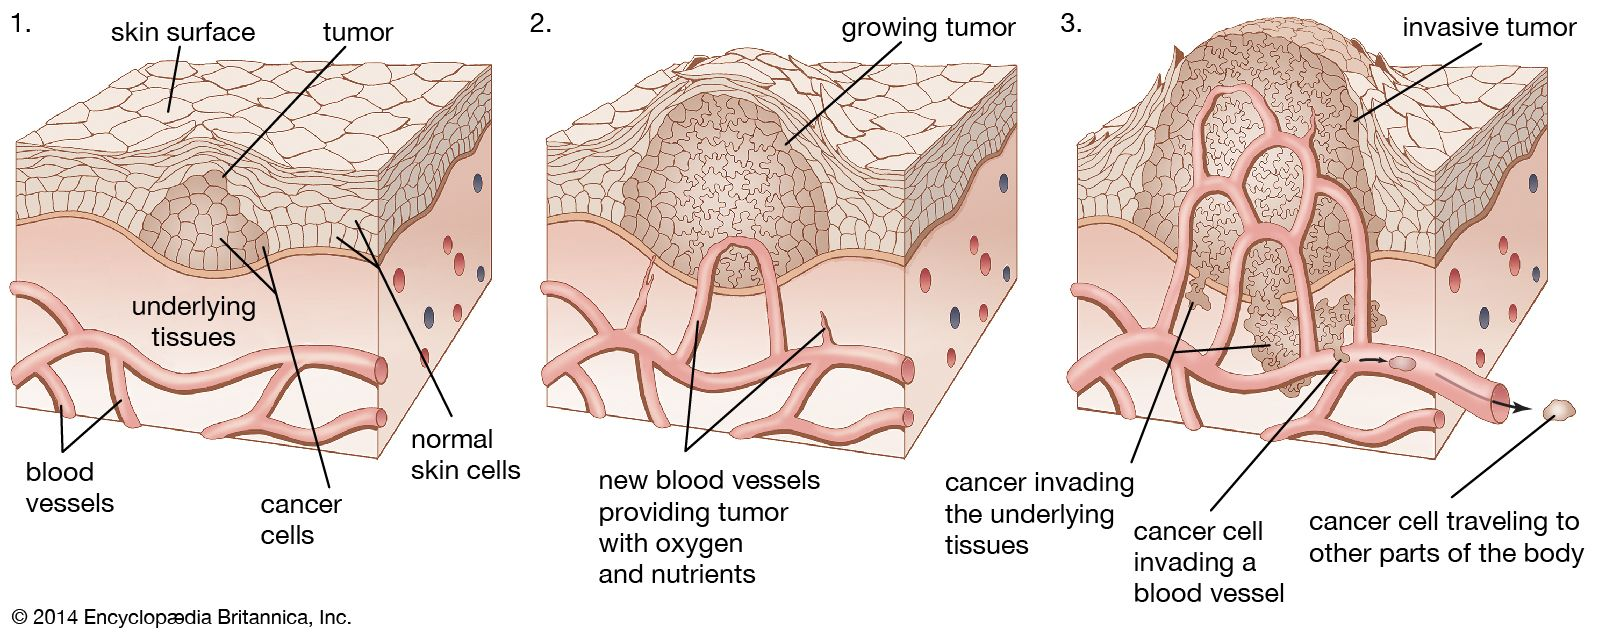 benign cancer of blood vessels pancreatic cancer yellow diarrhea